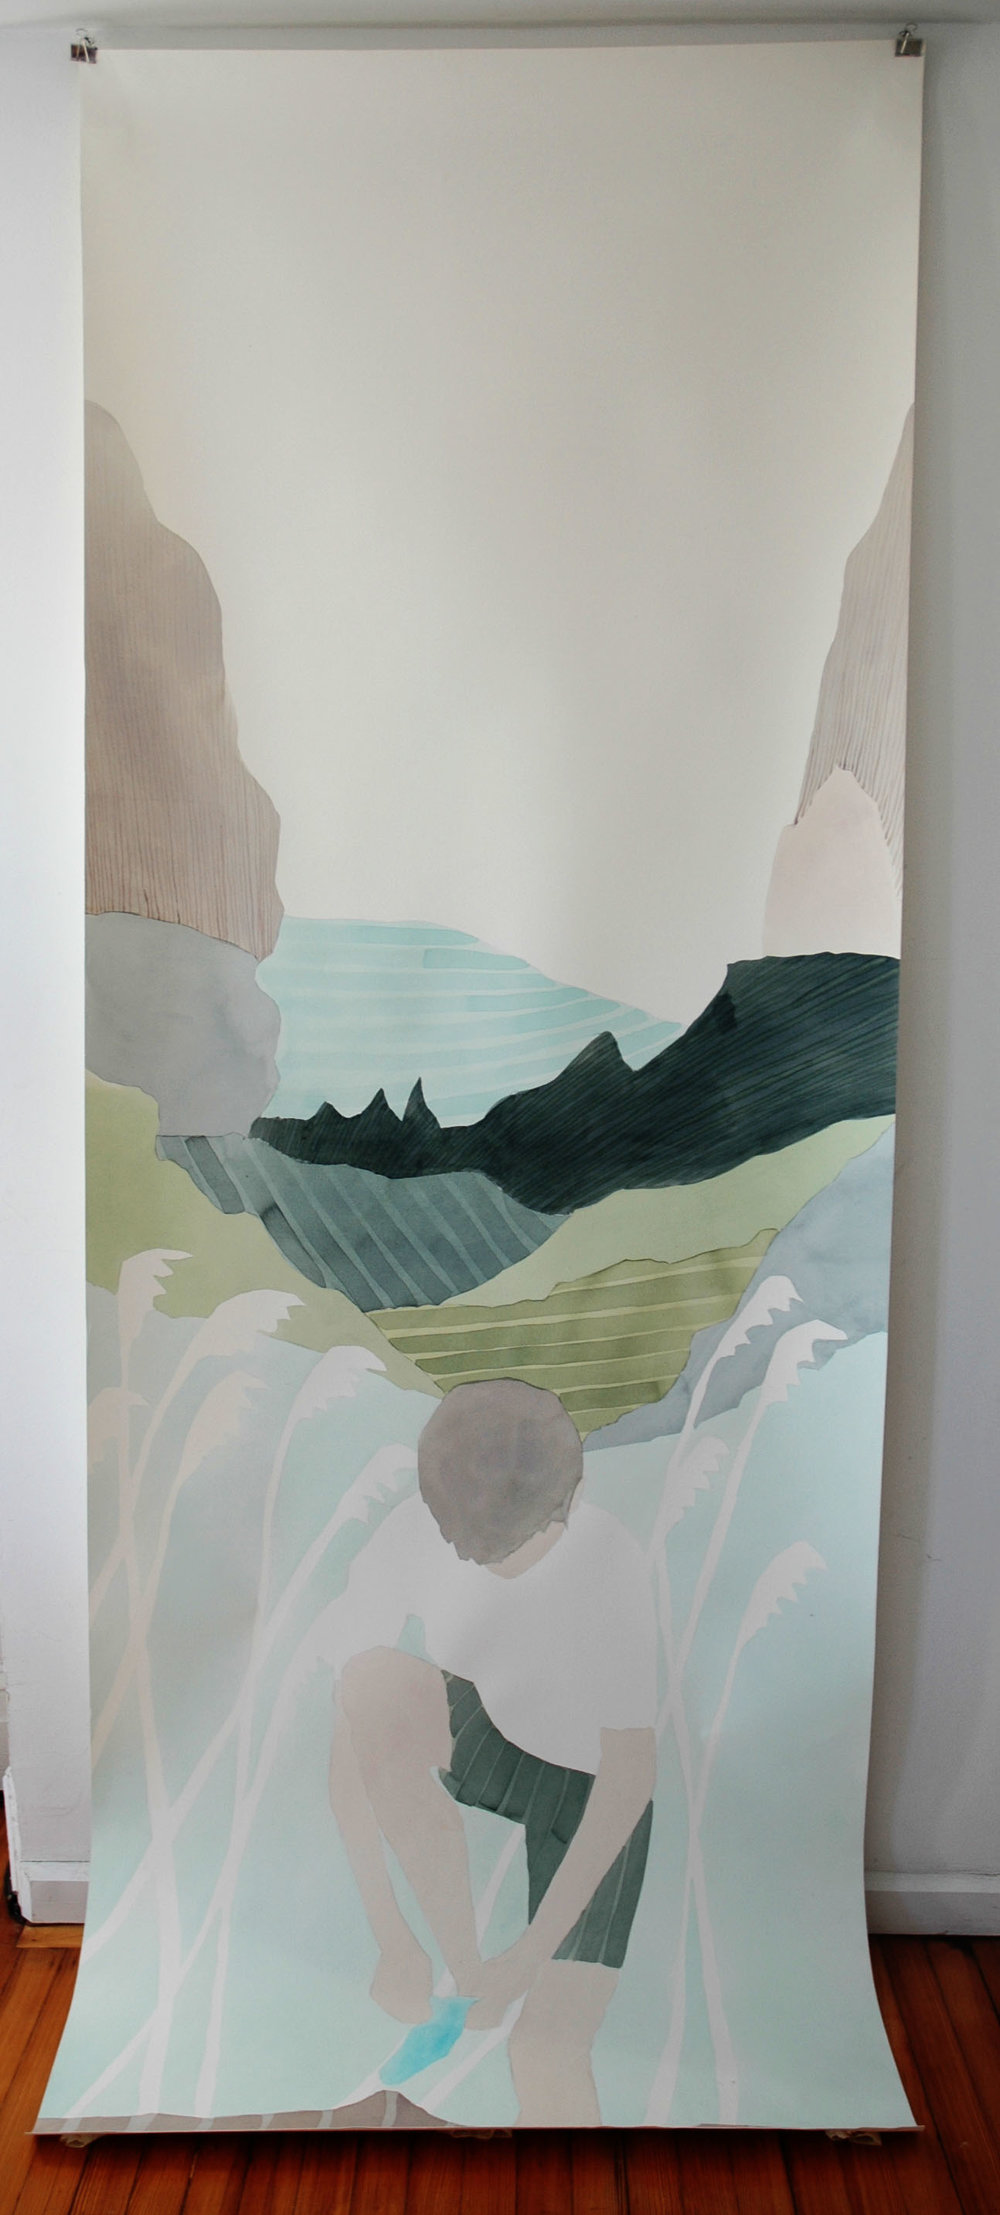 After swimming , 2012/2017, watercolor on paper, 116 x 42 inches, $7800. (unframed)